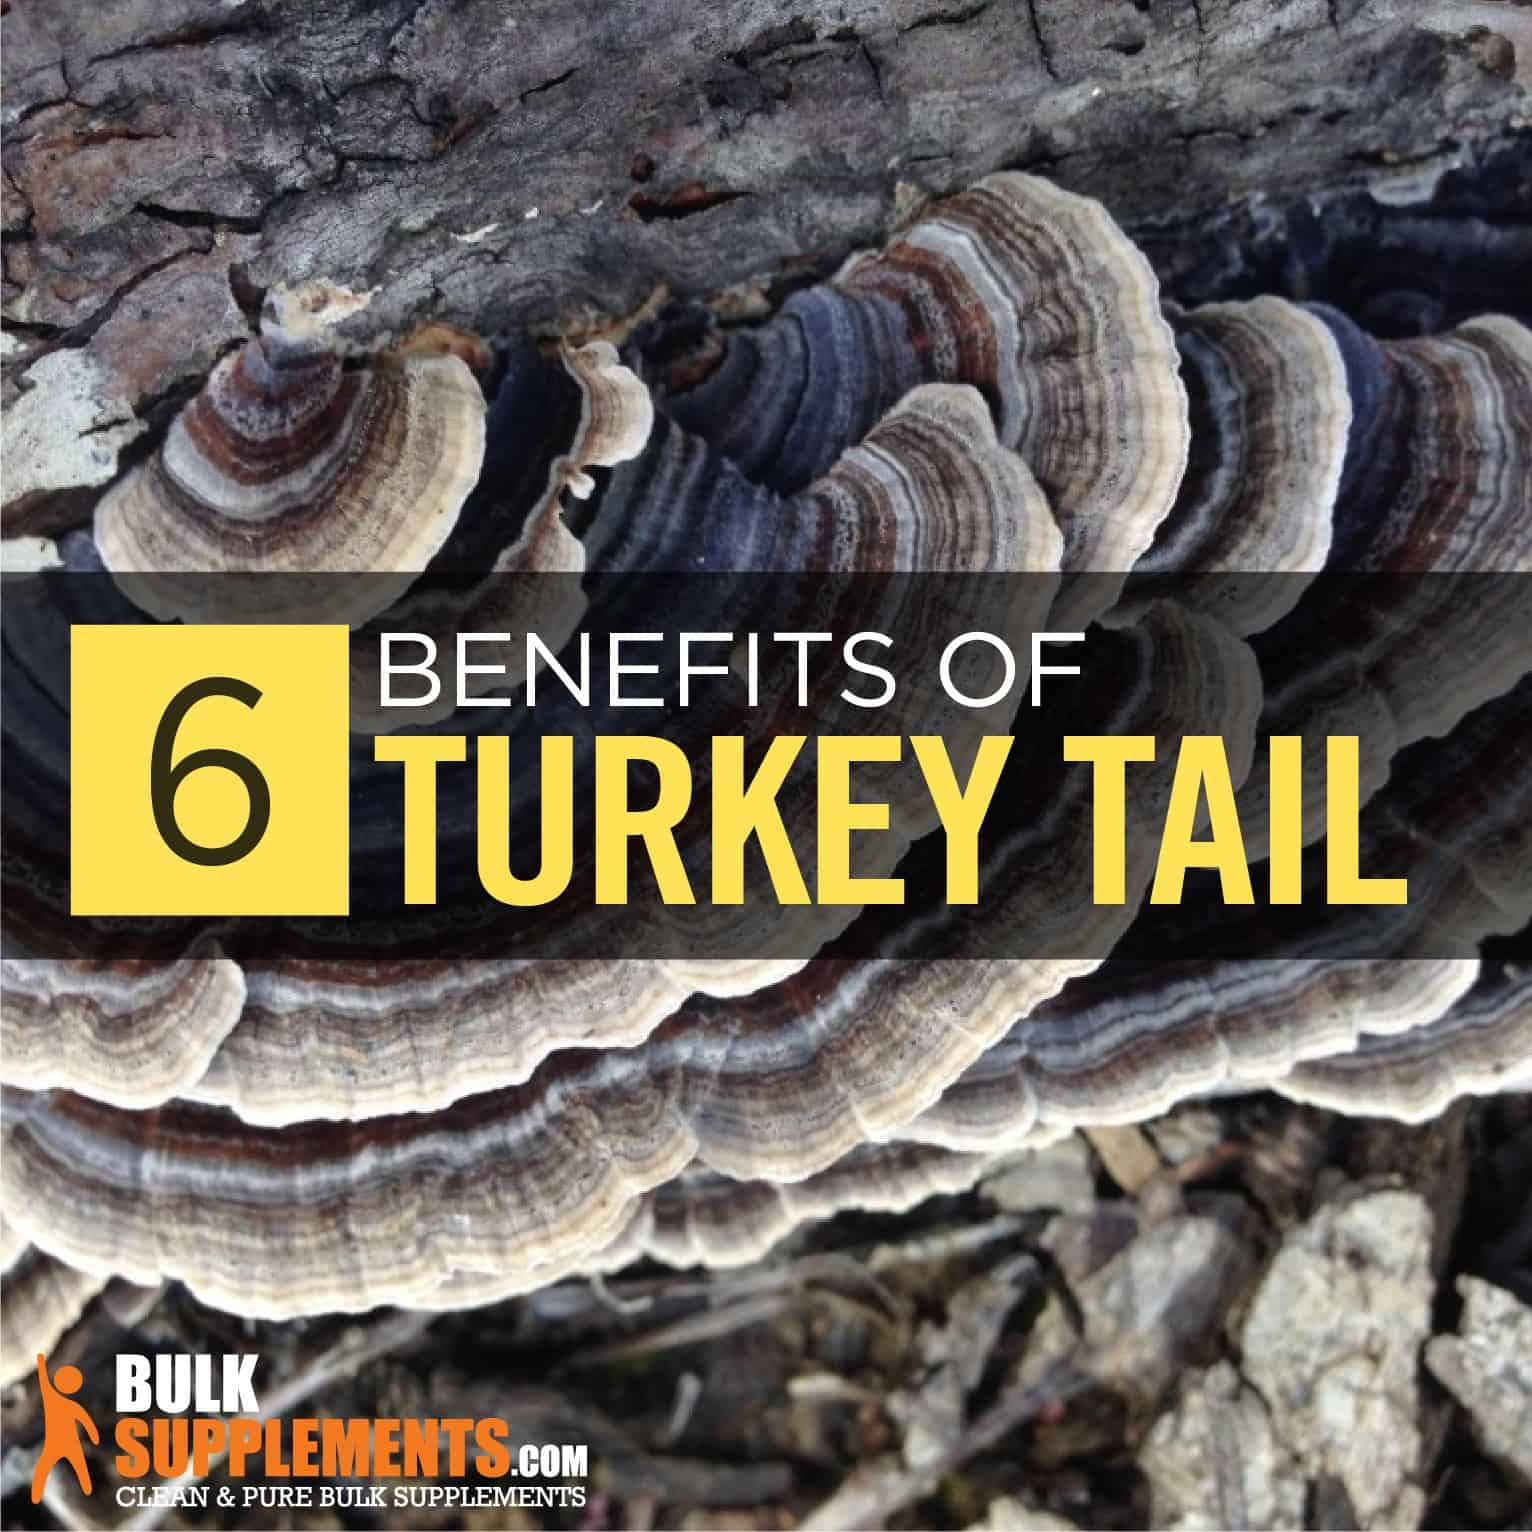 Turkey Tail (Coriolus Versicolor): Benefits, Side Effects